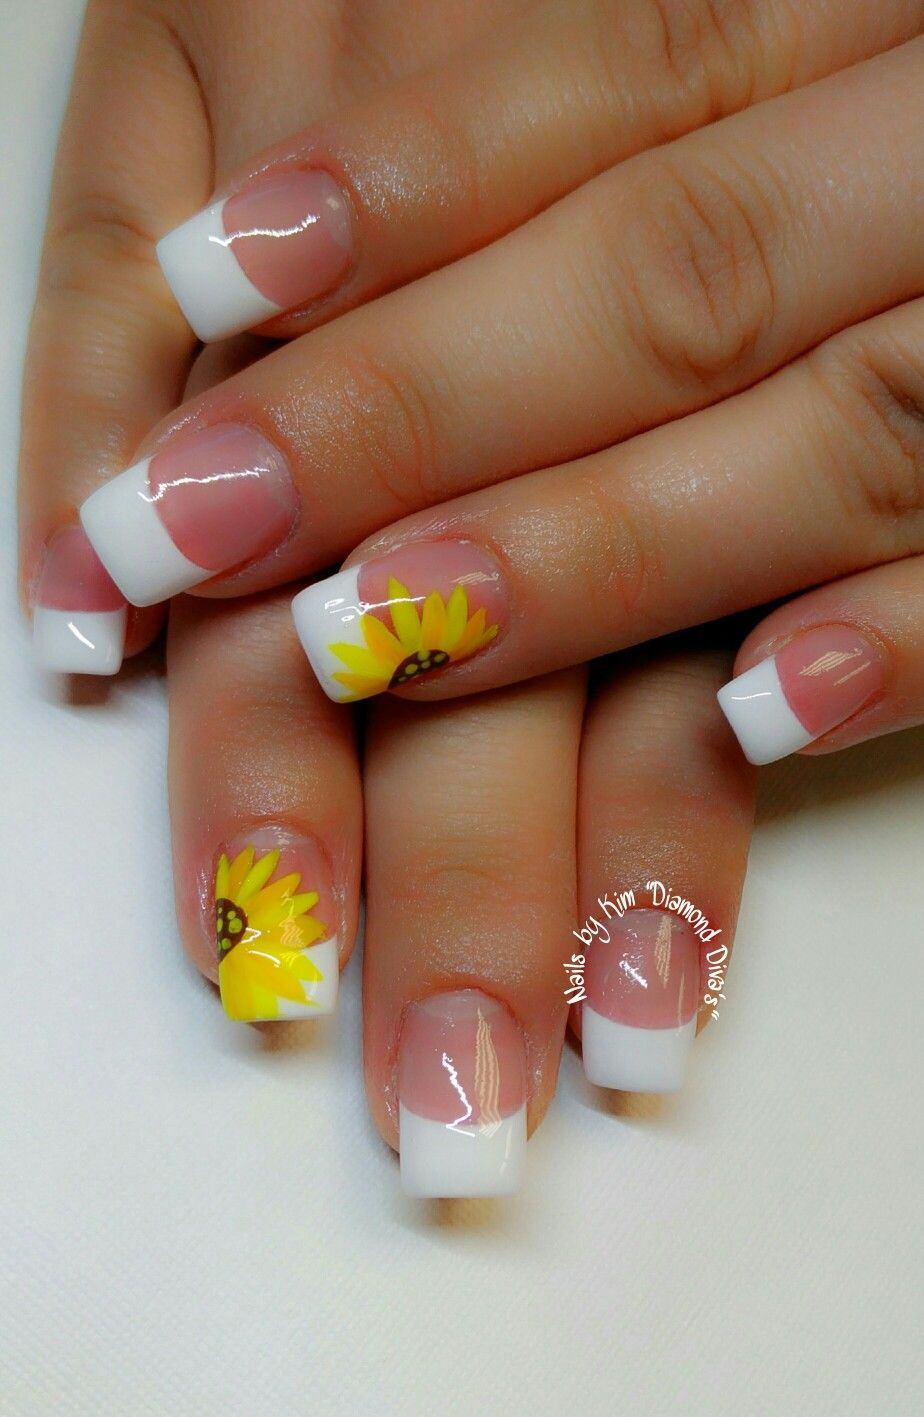 Sunflower nails - Sunflower Nails Nails Pinterest Sunflower Nails, Sunflowers